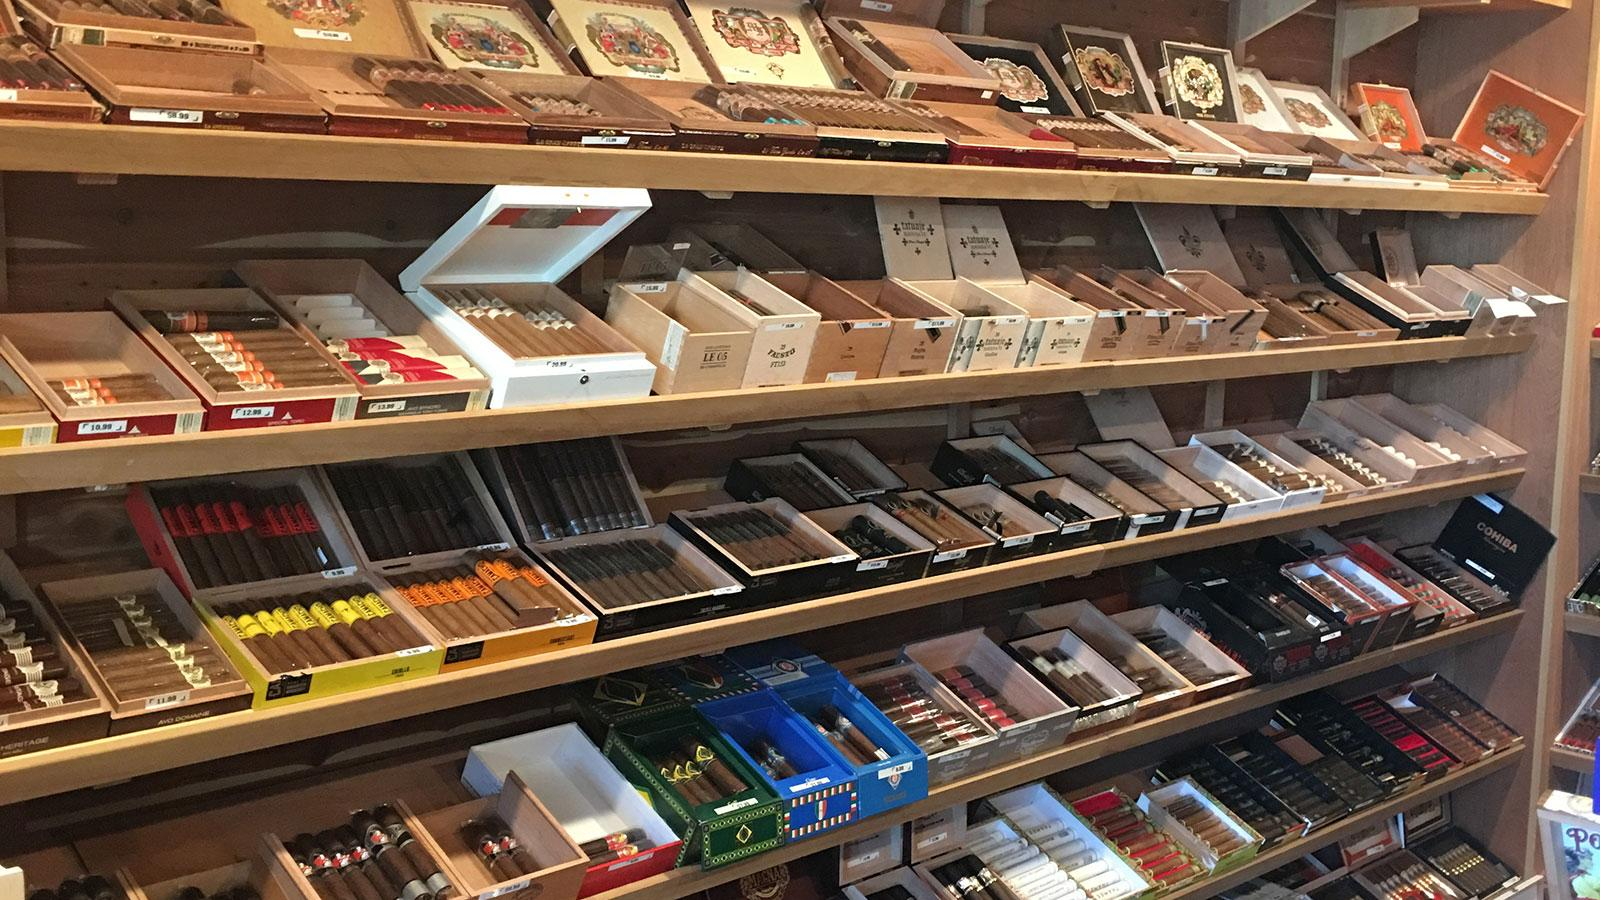 Cigars and More El Segundo humidor